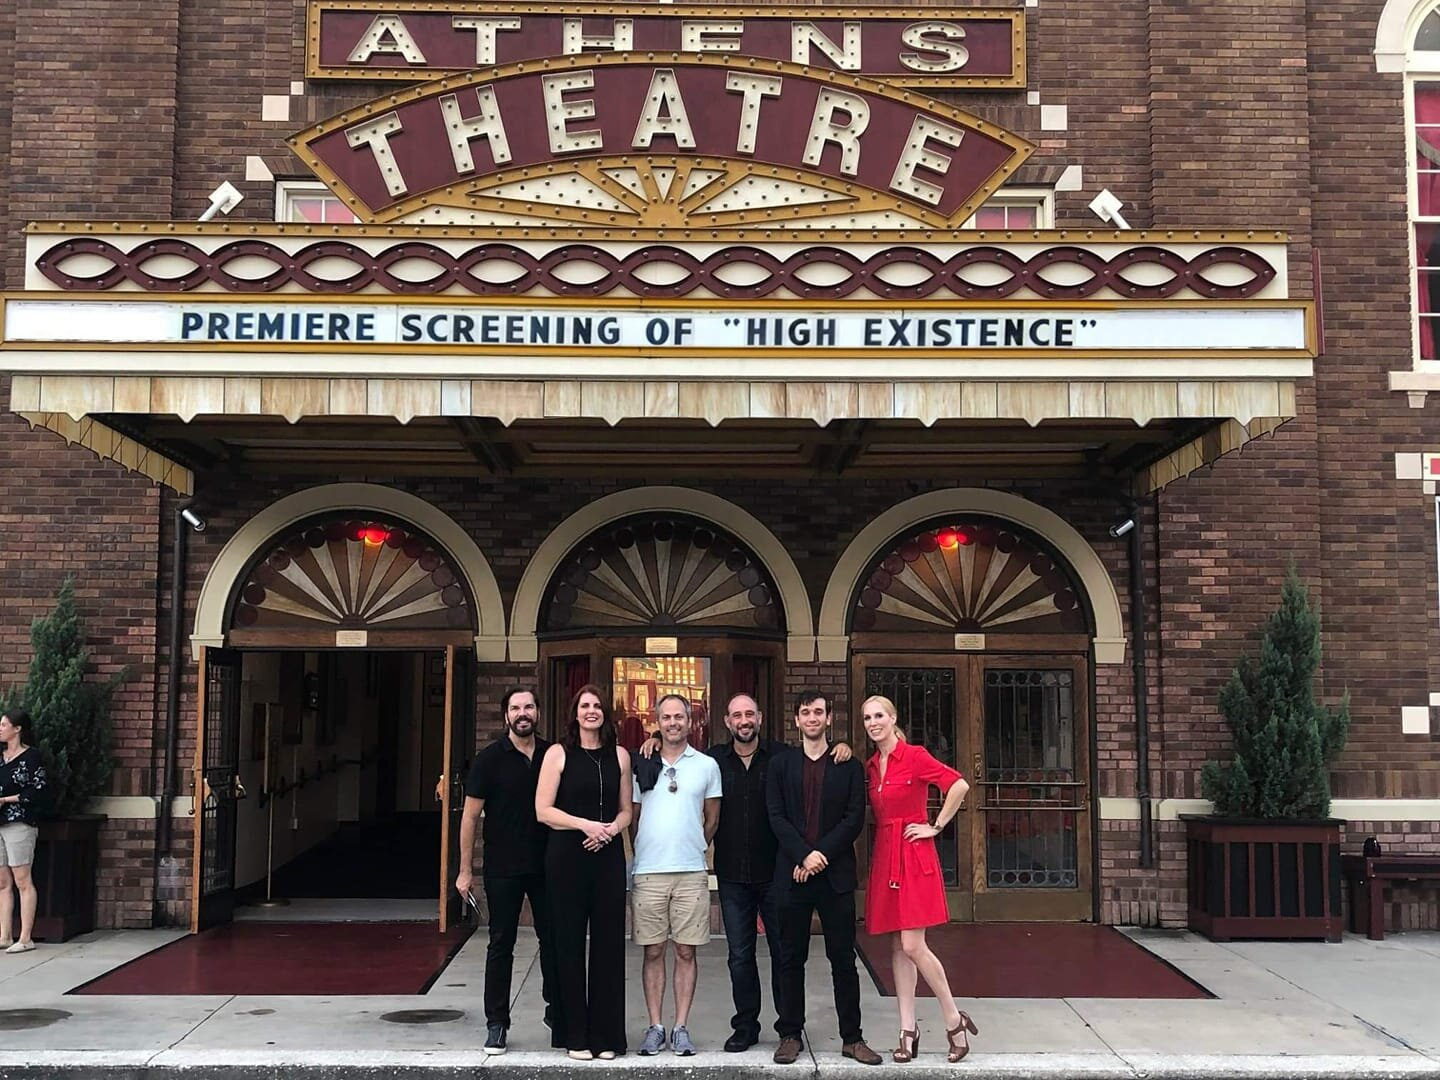 L-R: Wiley Lowe, Sara Humbert, Steve Lane, Fred Zara, Brandon Hofmann, and Erin Laine at the Athen's Theatre |  Courtesy of Fourth Man Productions Facebook